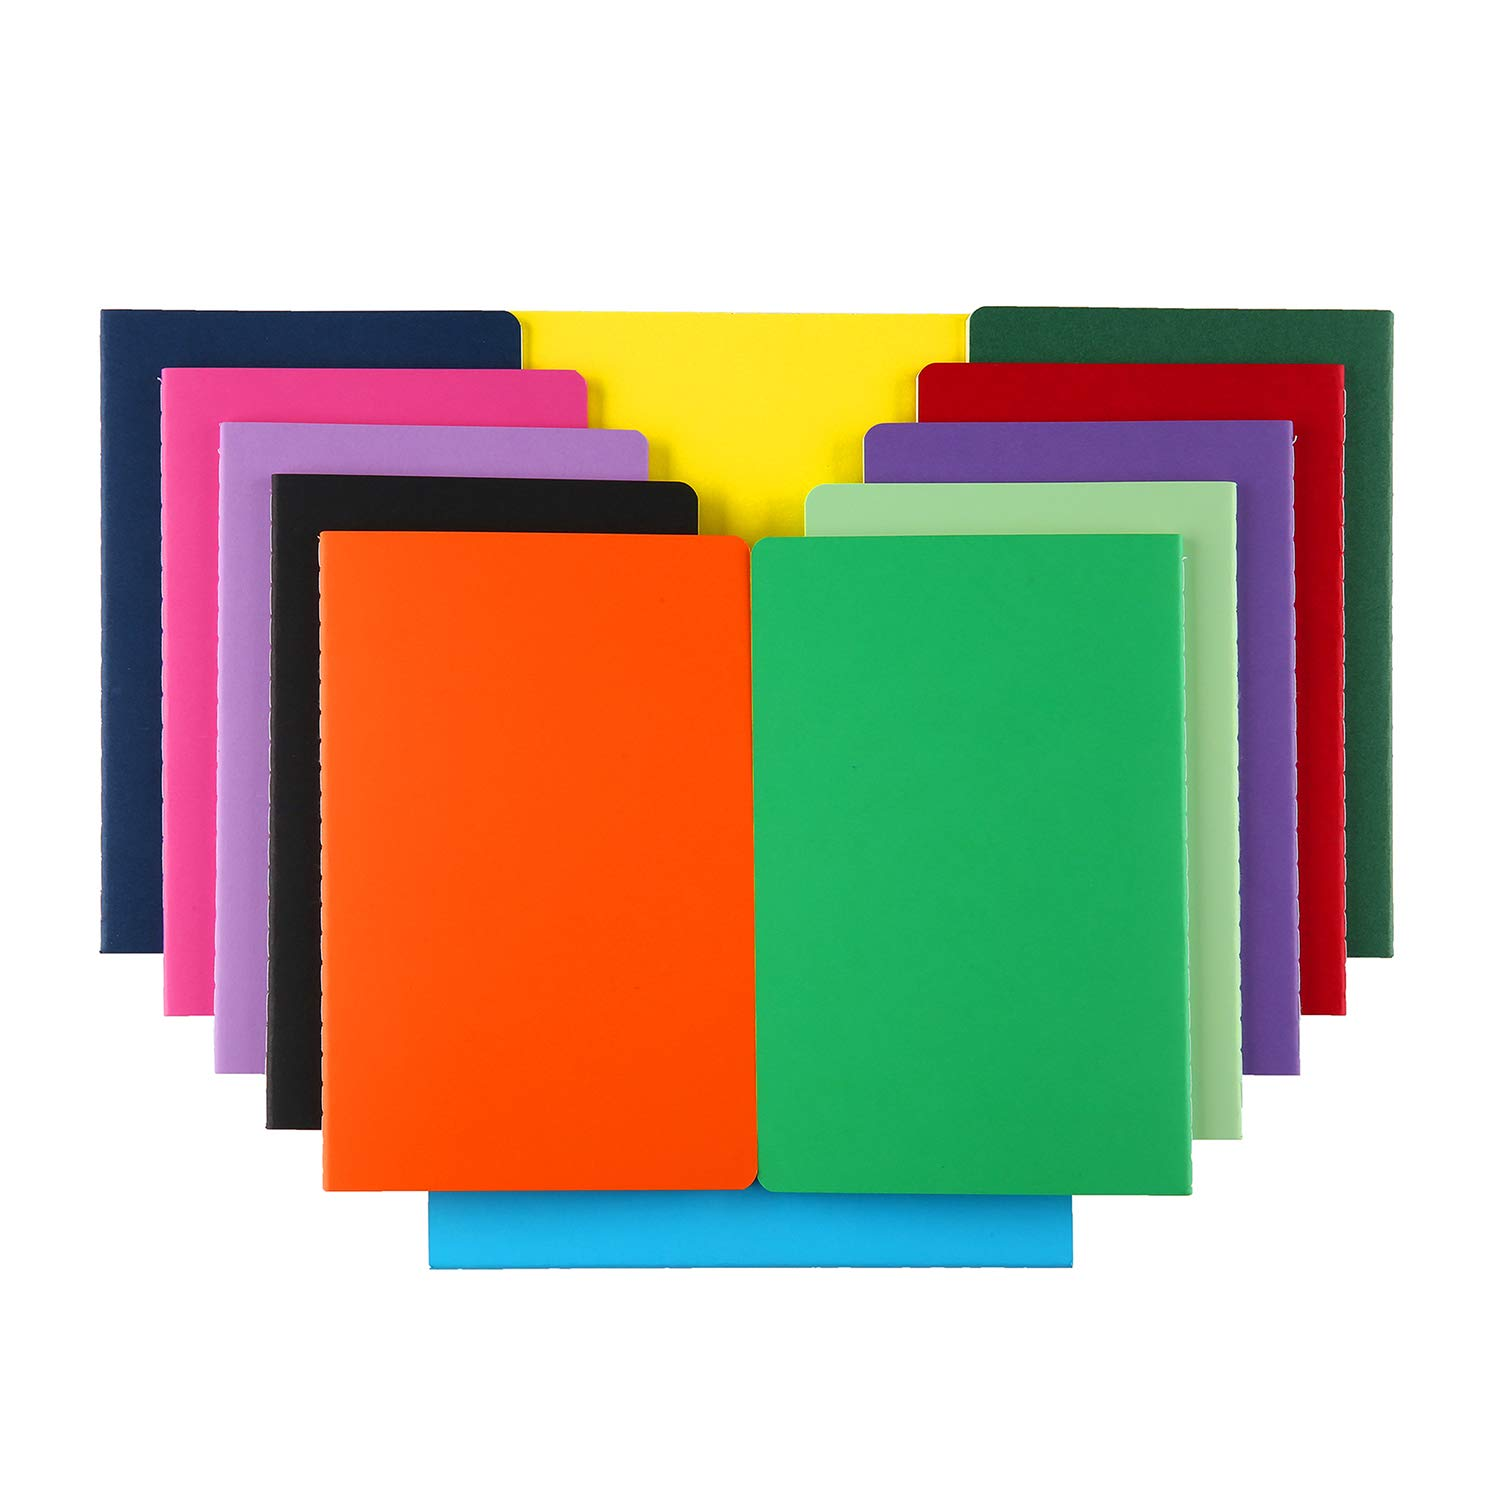 XYark 12 PCS Colorful Notebook Journals Bulk, Lined Paper, College Ruled, 60 Pages, 5.5''x8.3'', A5 Size, Travel Journal Set for Travelers, Students and Office, Writing Diary Subject Notebooks Planner by XYark